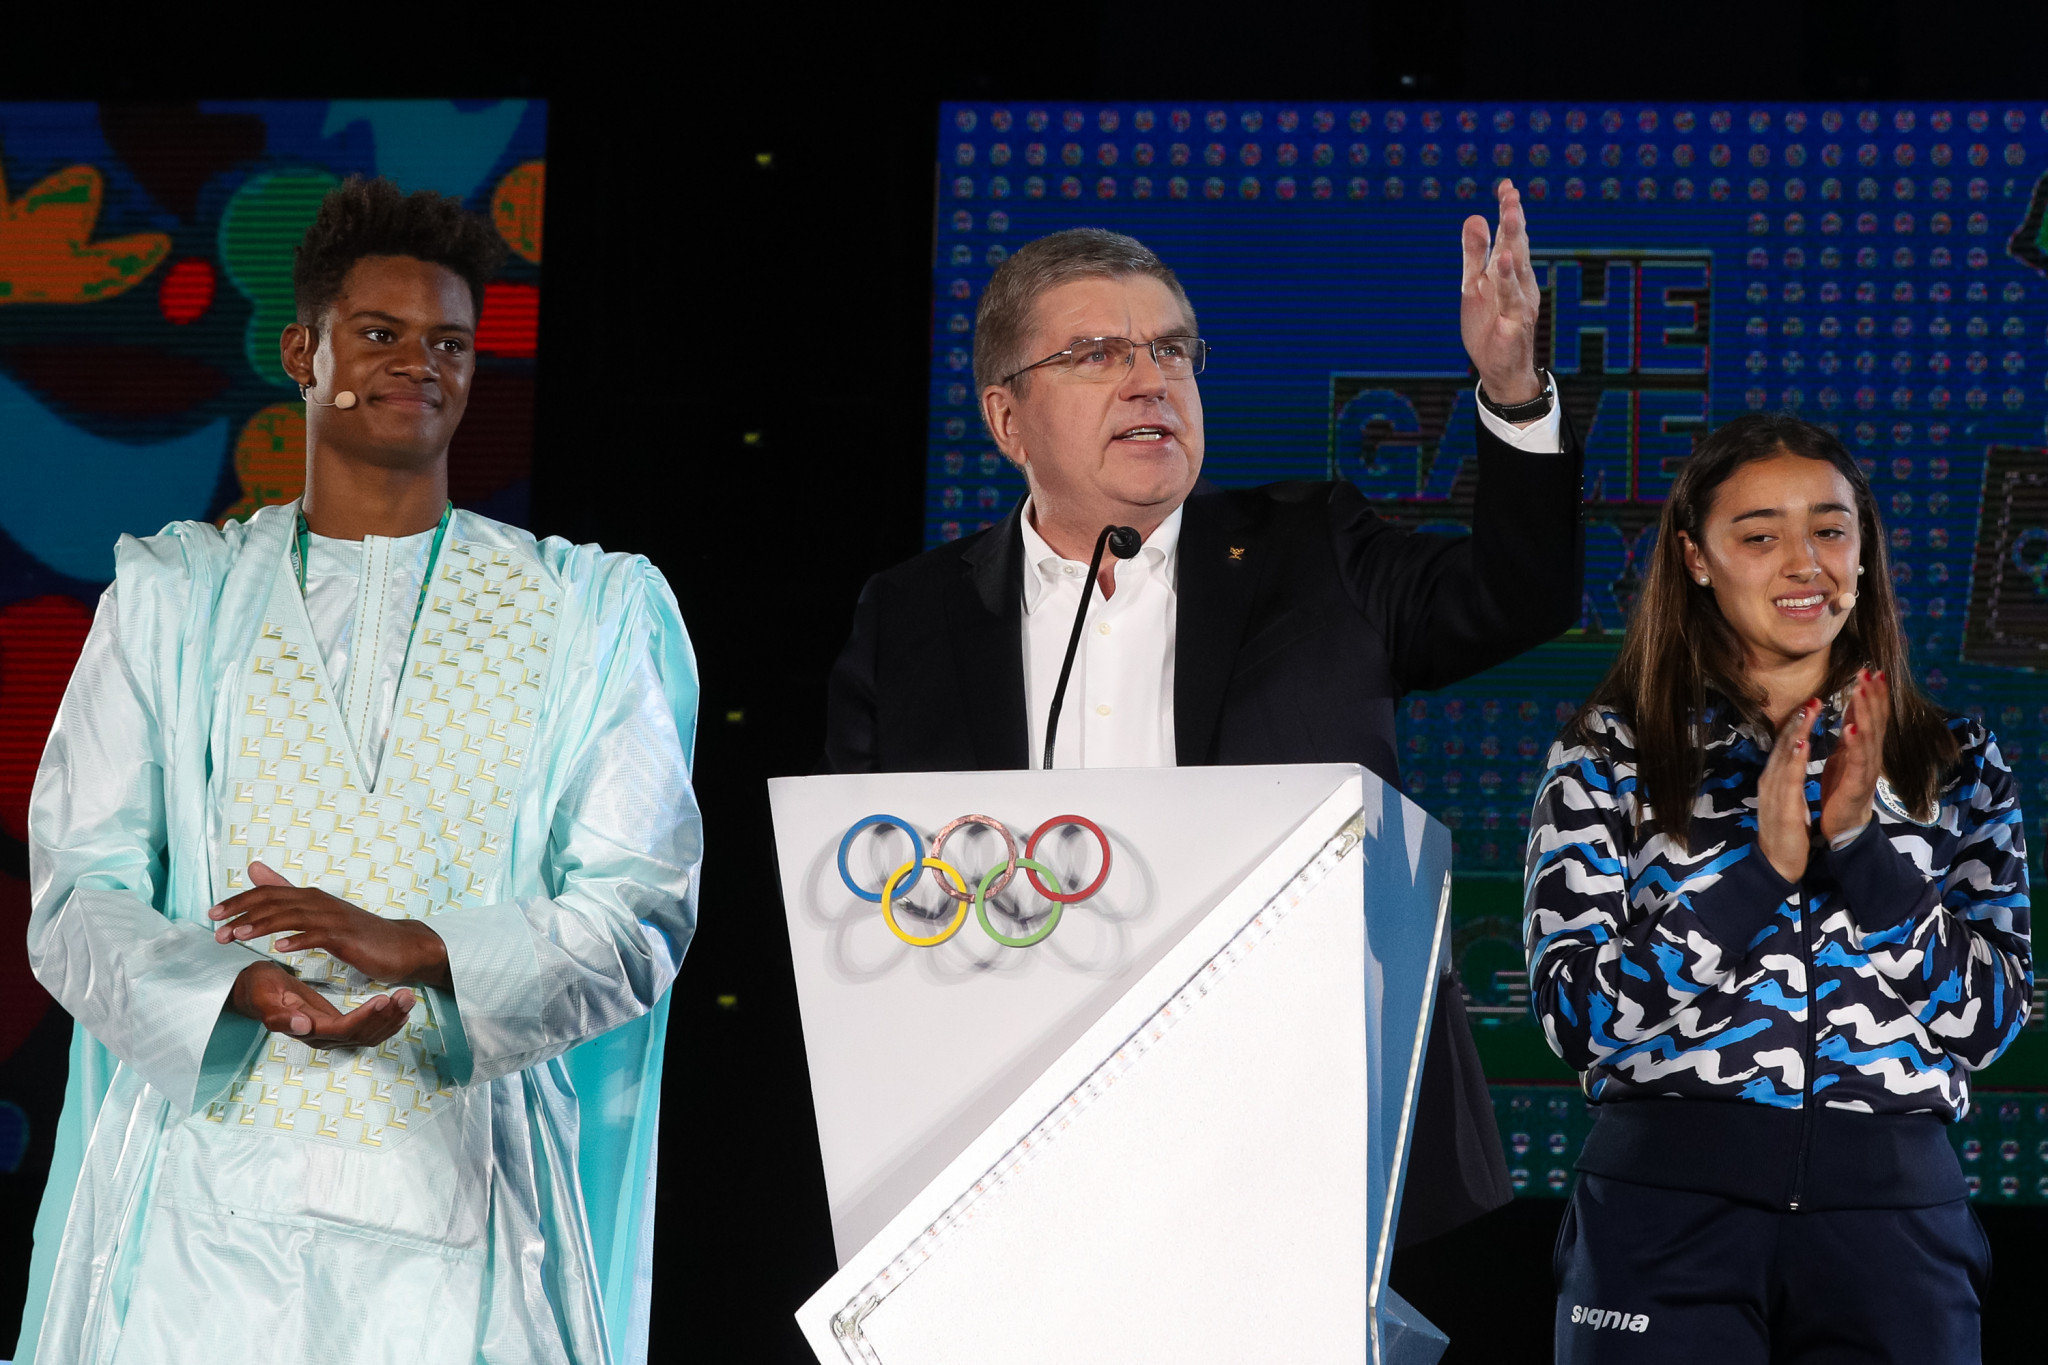 IOC President Thomas Bach thanked Argentina and Buenos Aires during his speech at the ceremony ©Getty Images